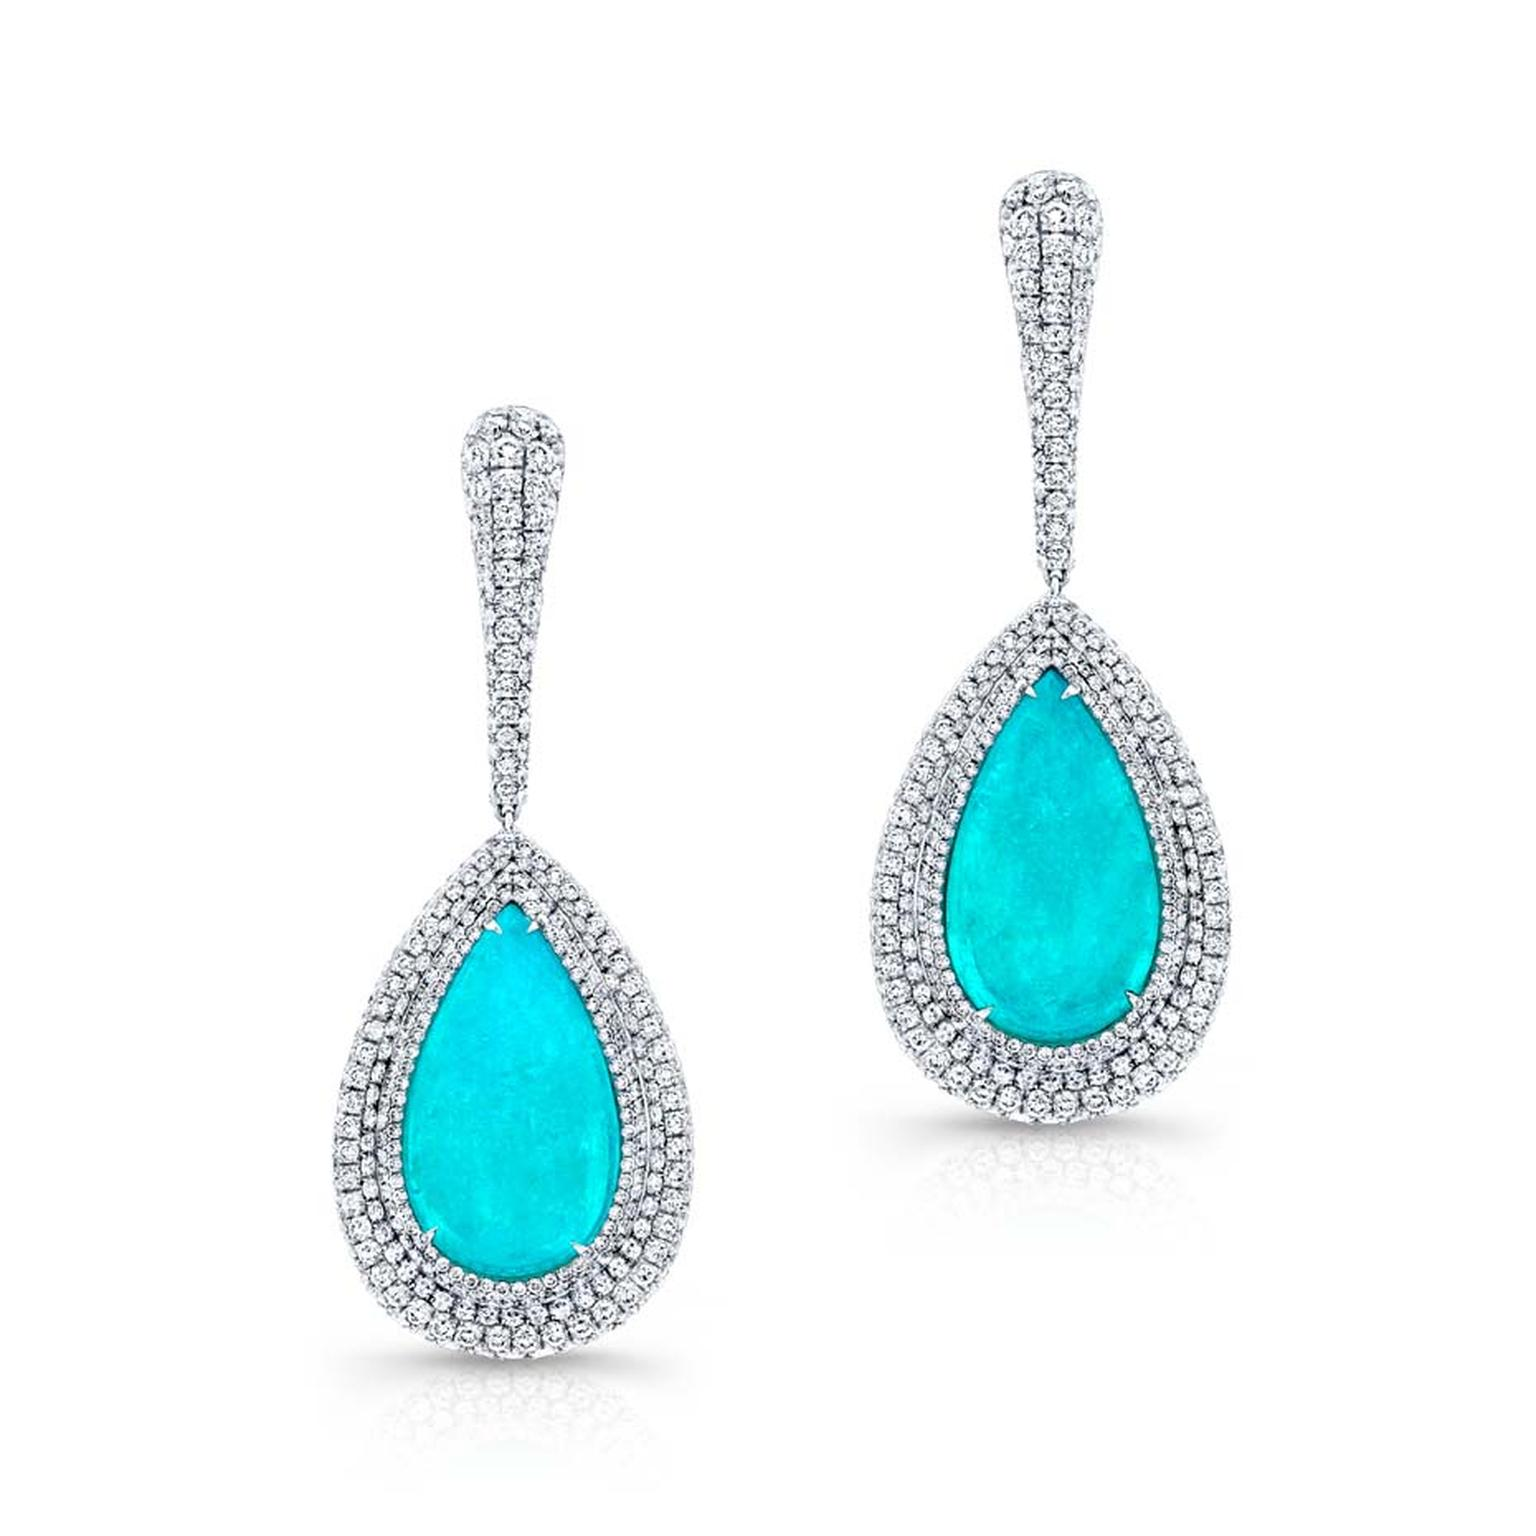 The unrivalled beauty of the Brazilian Paraiba tourmaline shines through in this pair of Martin Katz cabochon drop earrings.